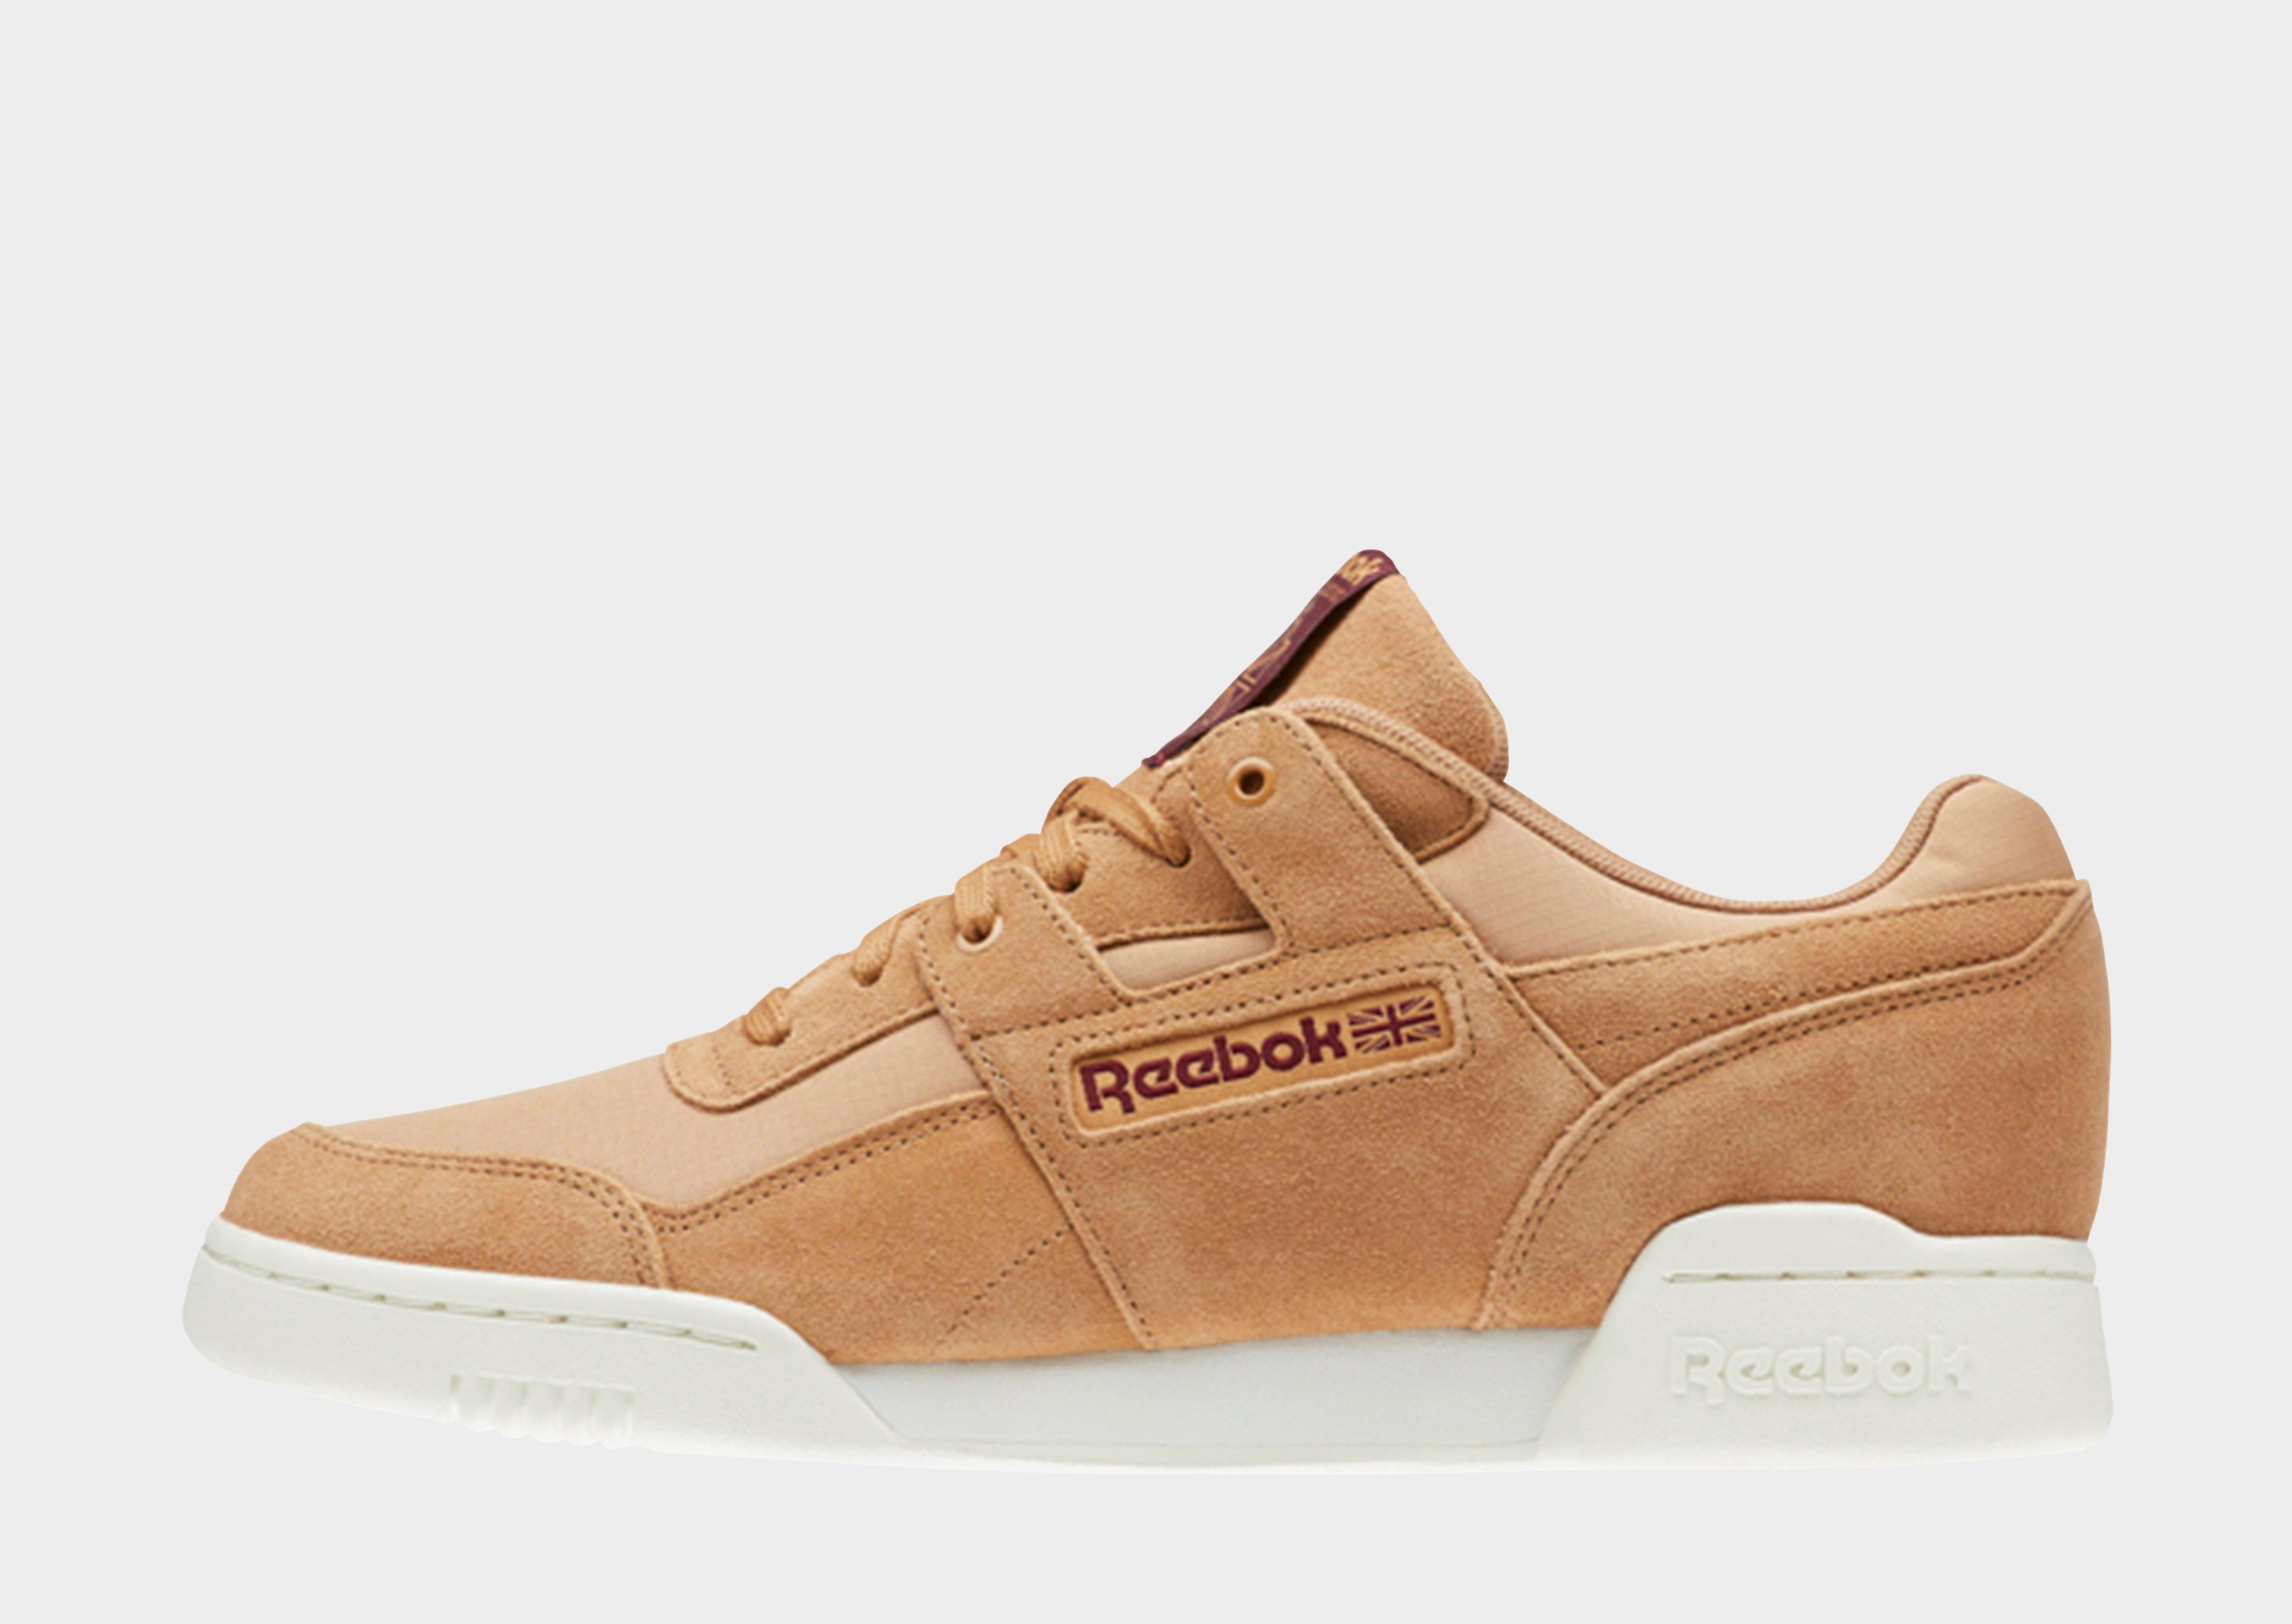 Lyst - Reebok Workout Plus Mu in Natural for Men e09232436